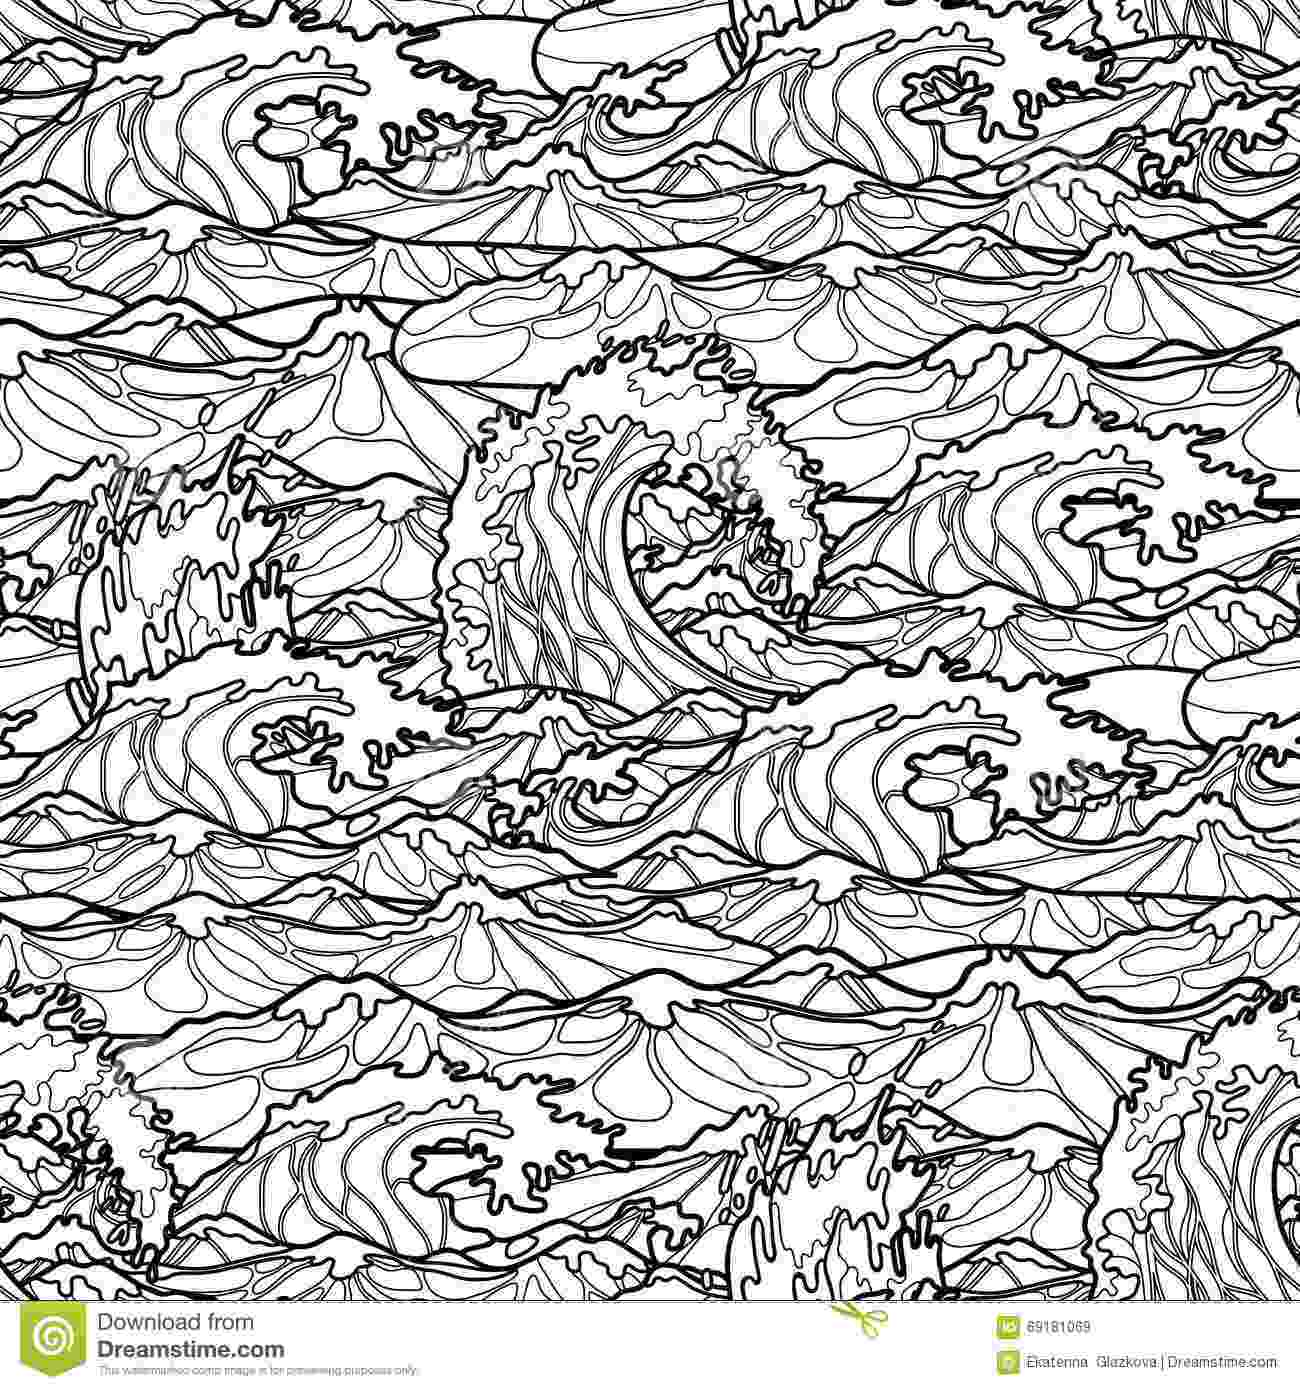 line art coloring book line art coloring page cardinal on branch the art coloring line book